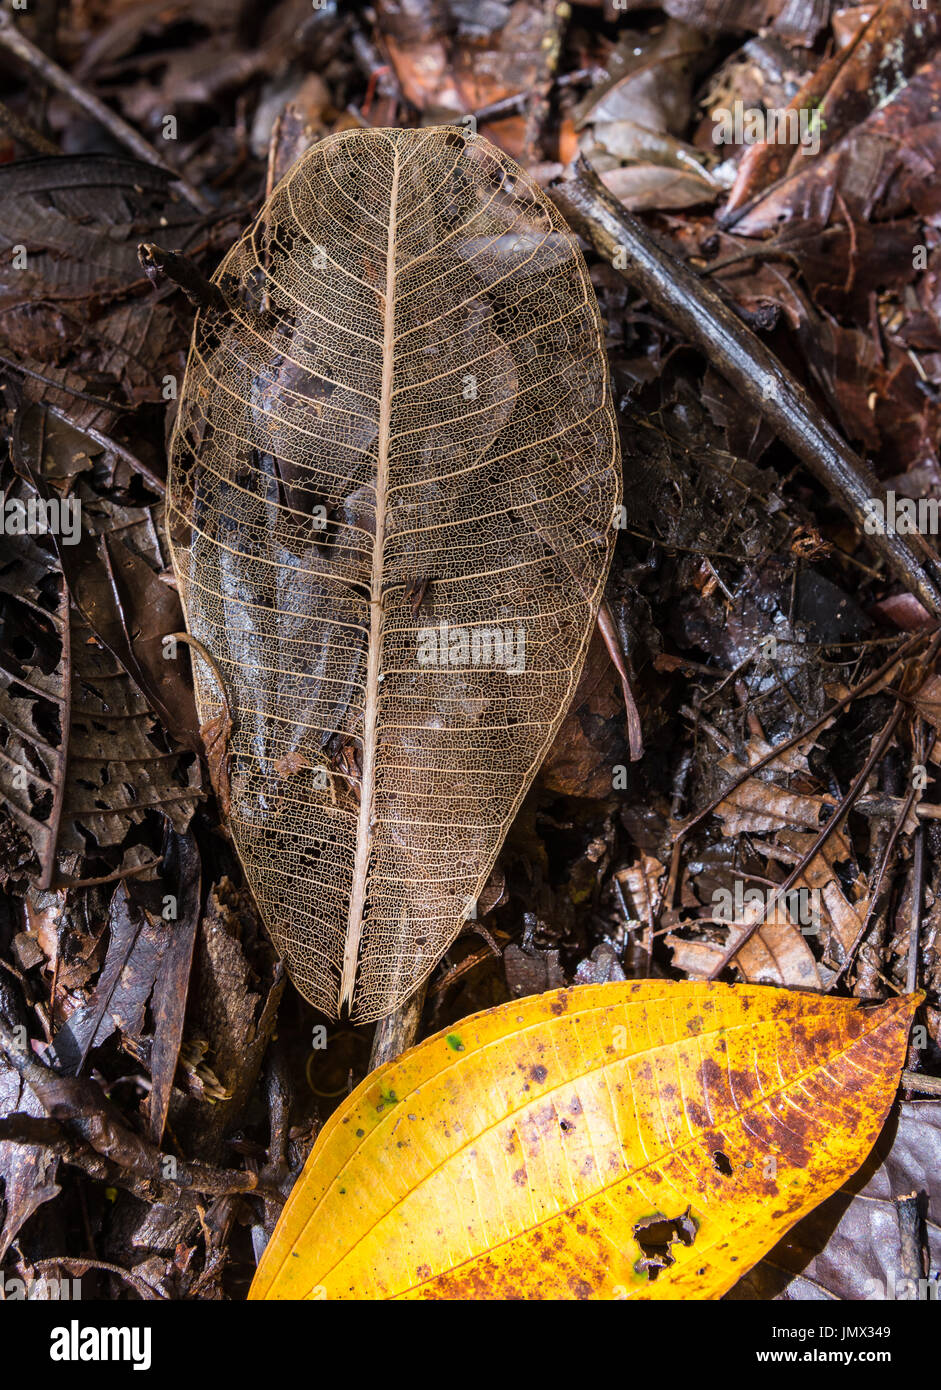 Decayed and about to decay leaves in forest. Colombia, South America. - Stock Image